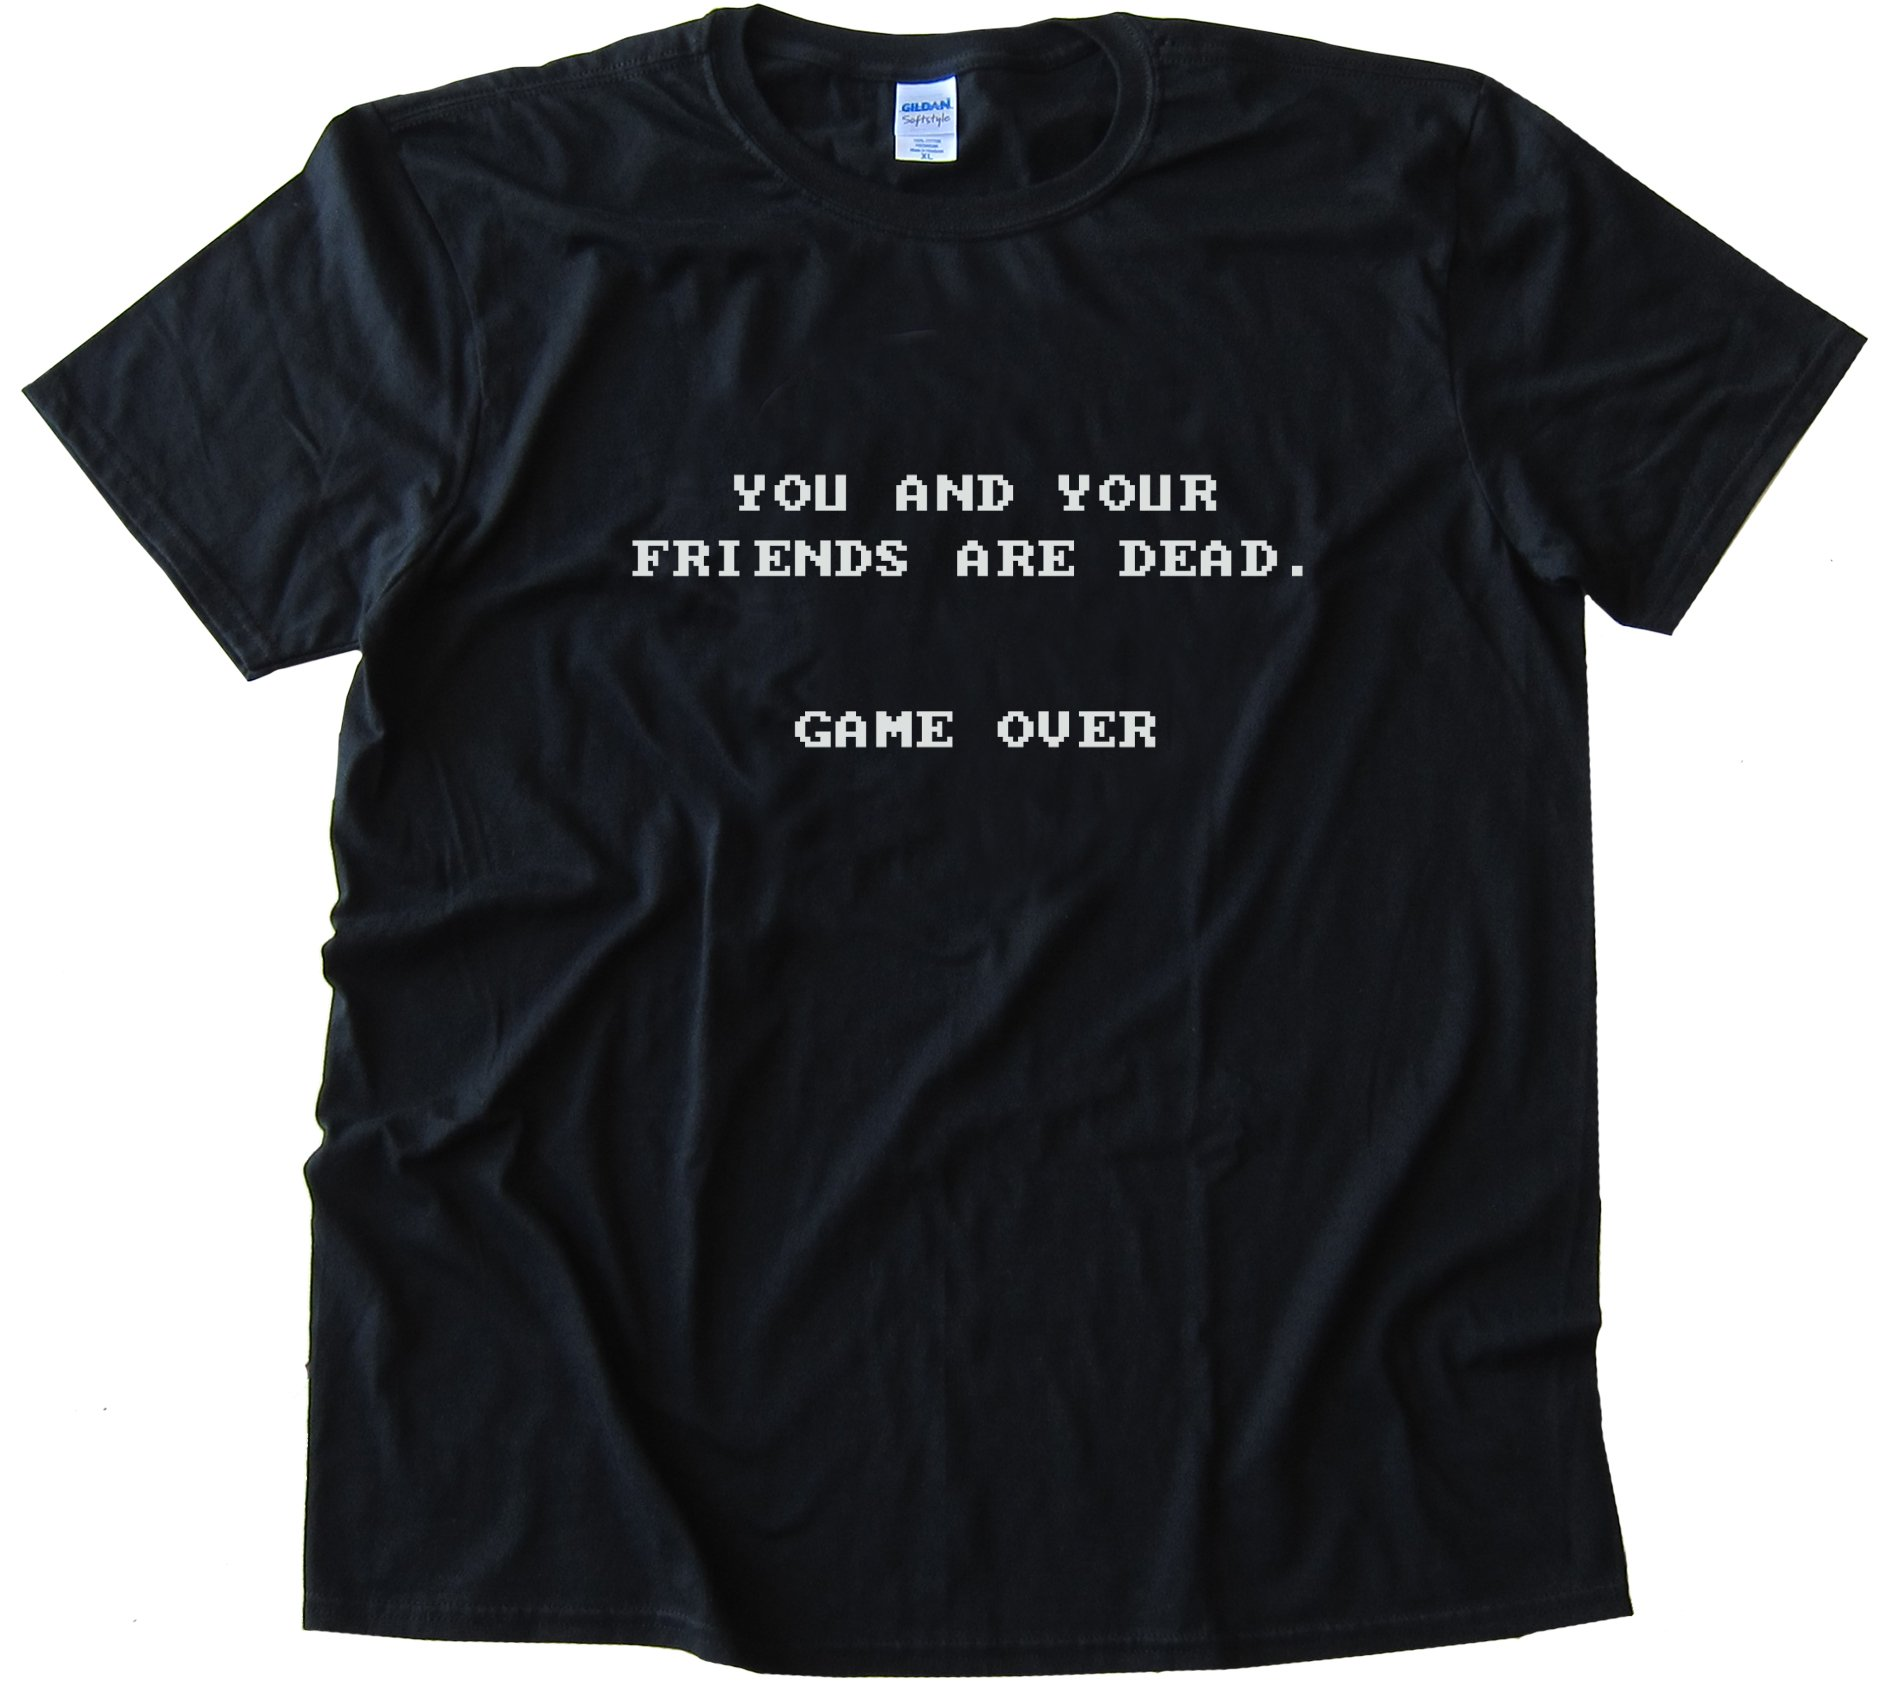 You And Your Friends Are Dead. Game Over Tee Shirt